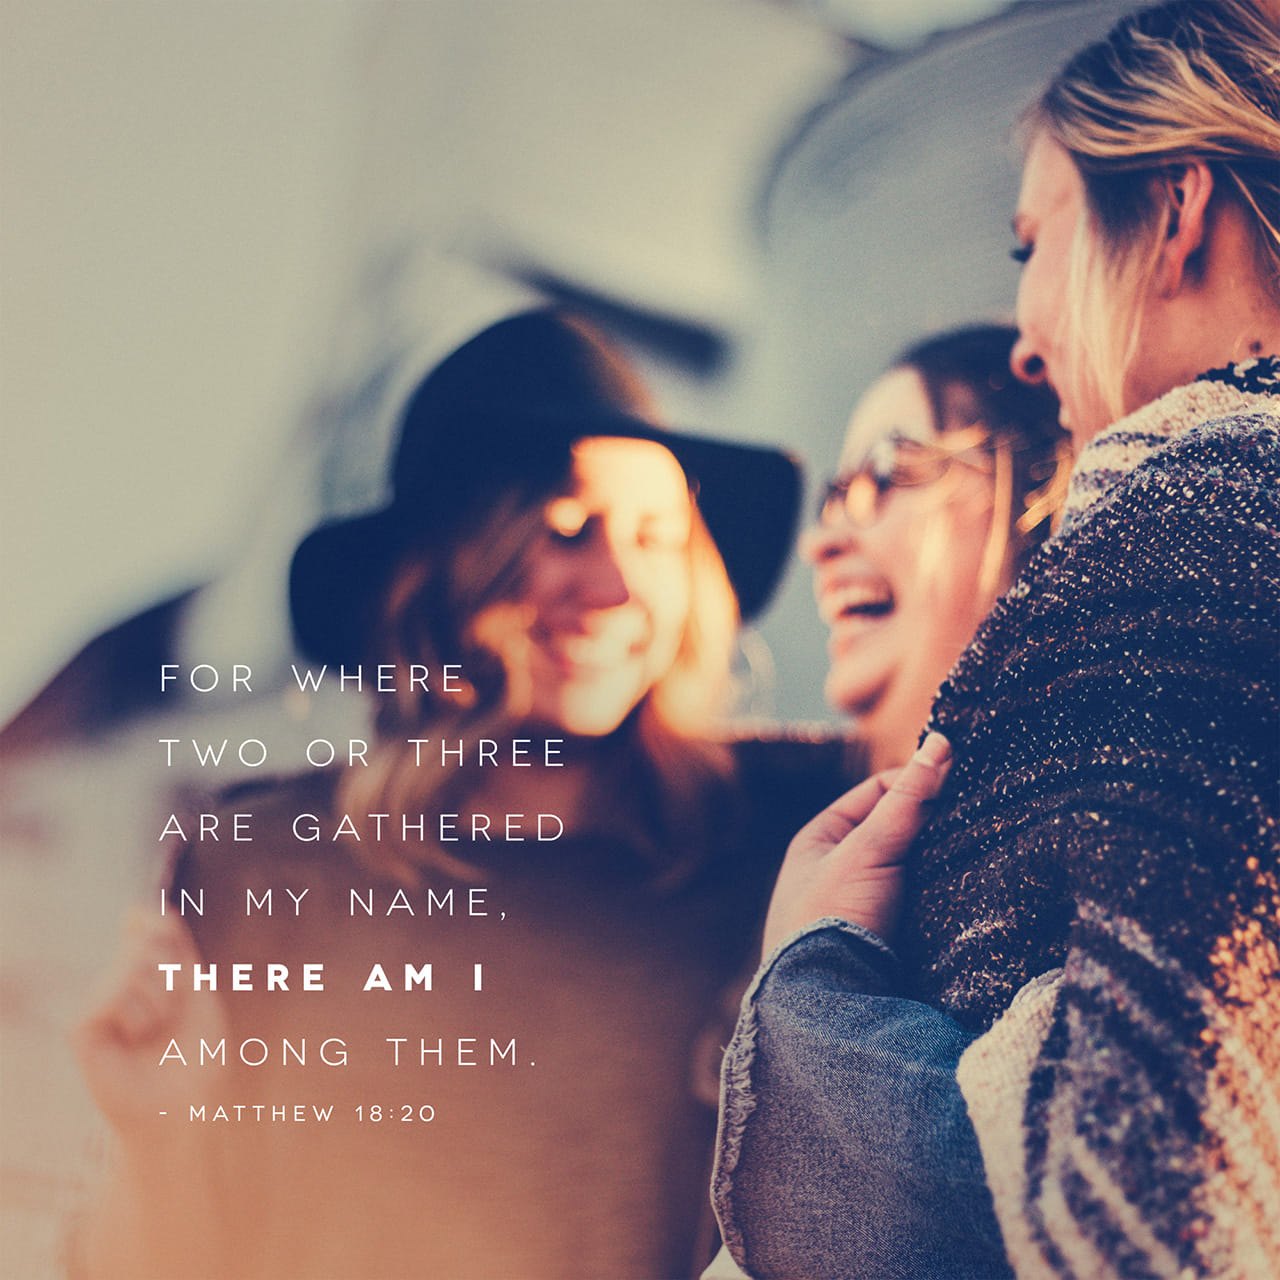 Matthew 18:20 For where two or three gather in my name, there am I with them."